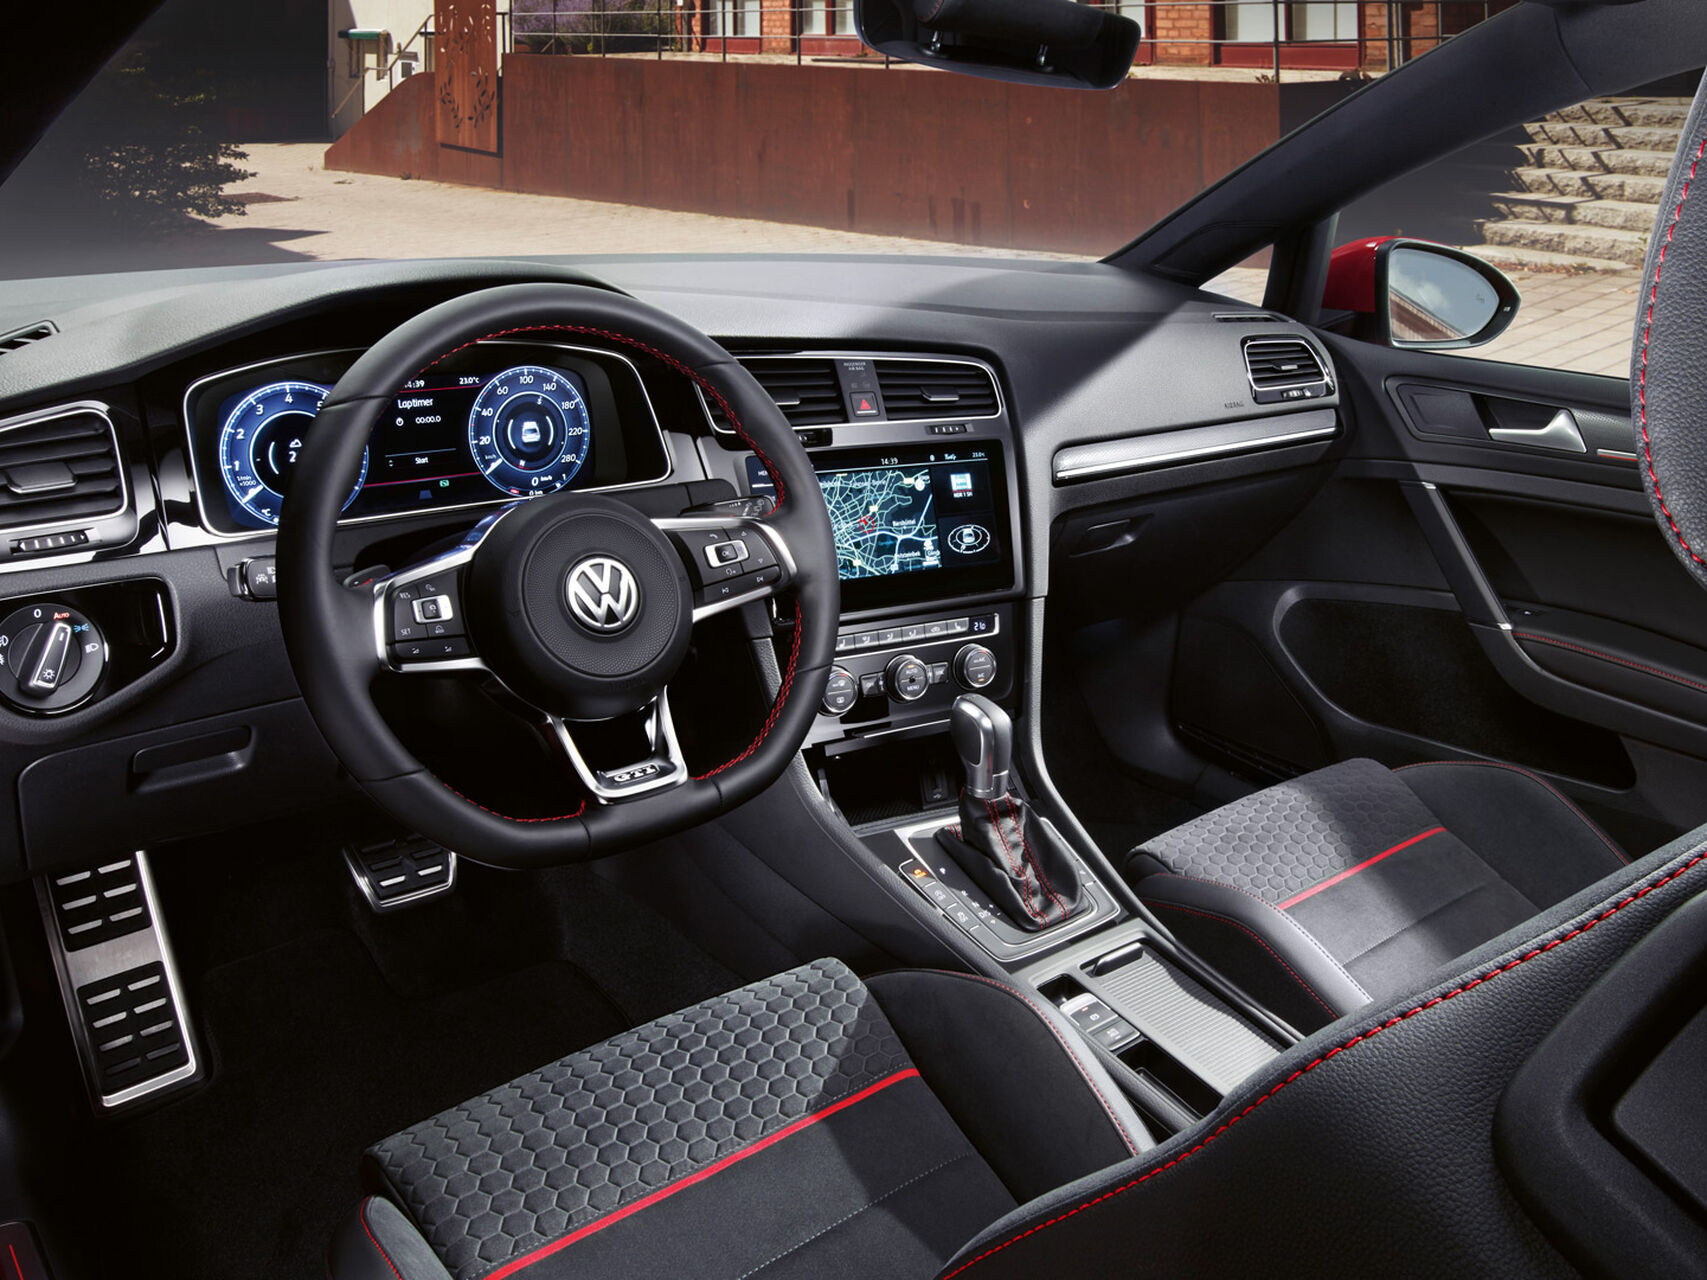 VW Golf GTI interior și bord